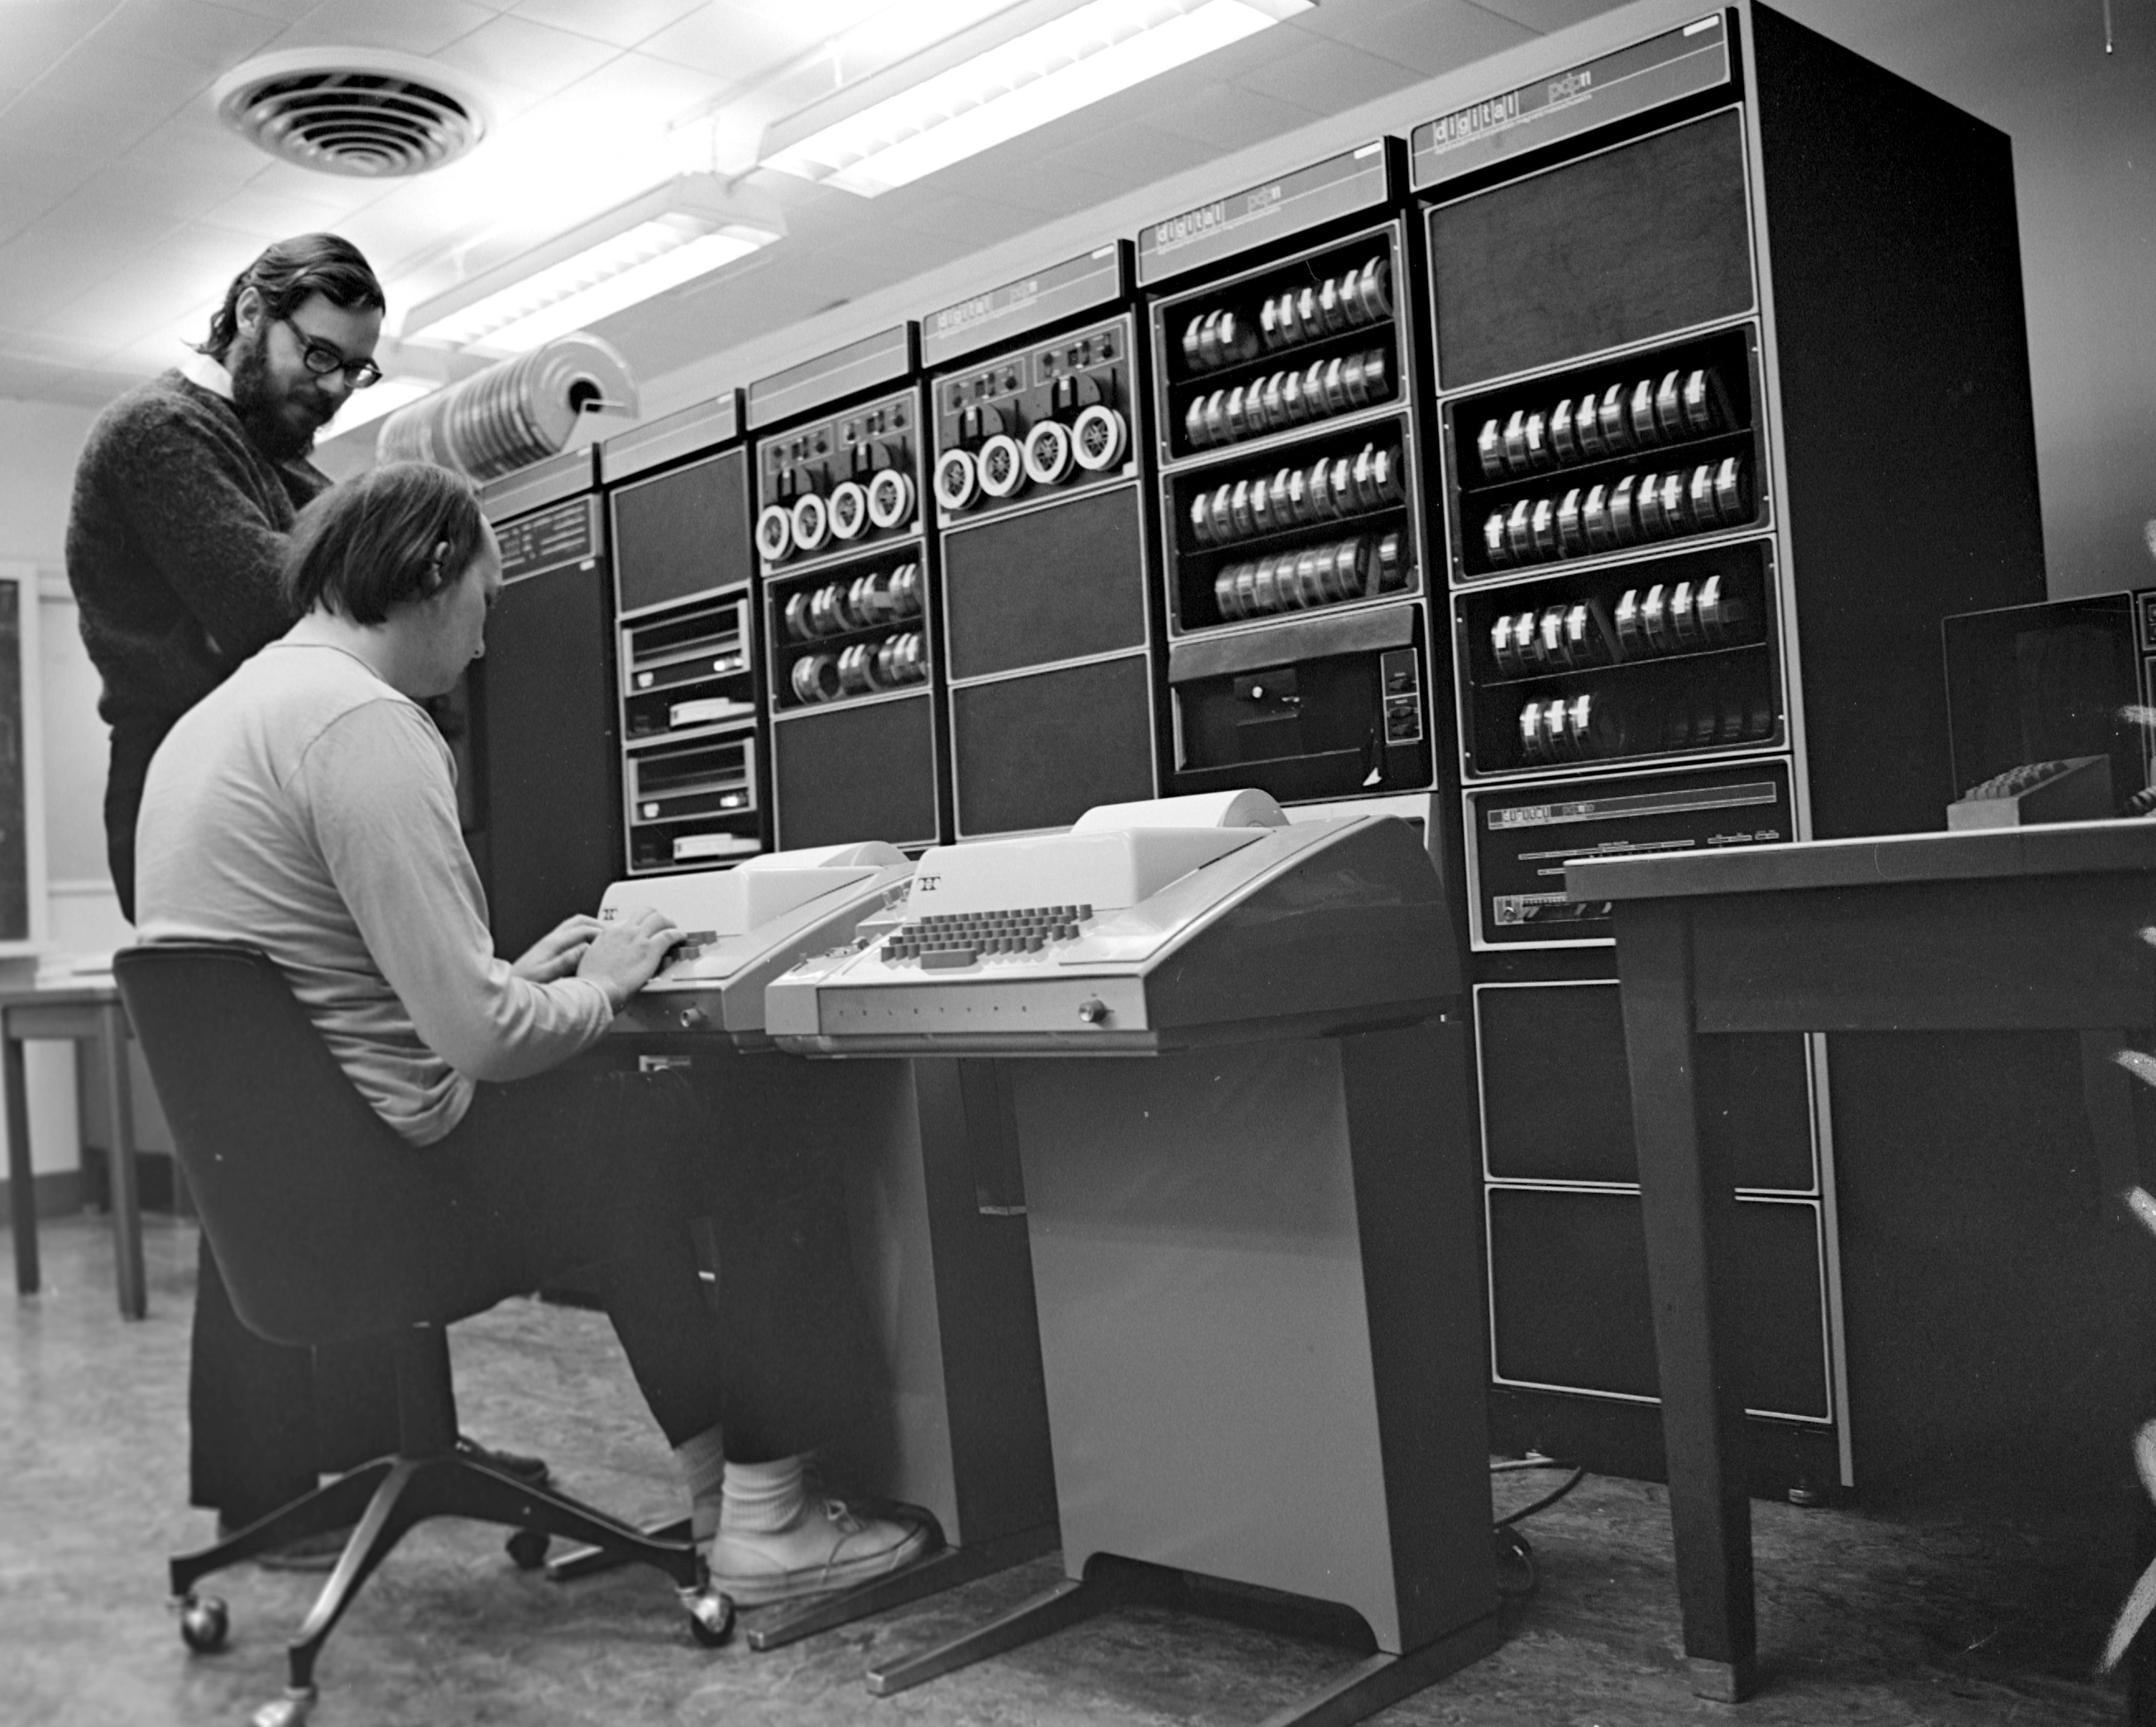 Ken Thompson interacting with a PDP-11 via teletype.